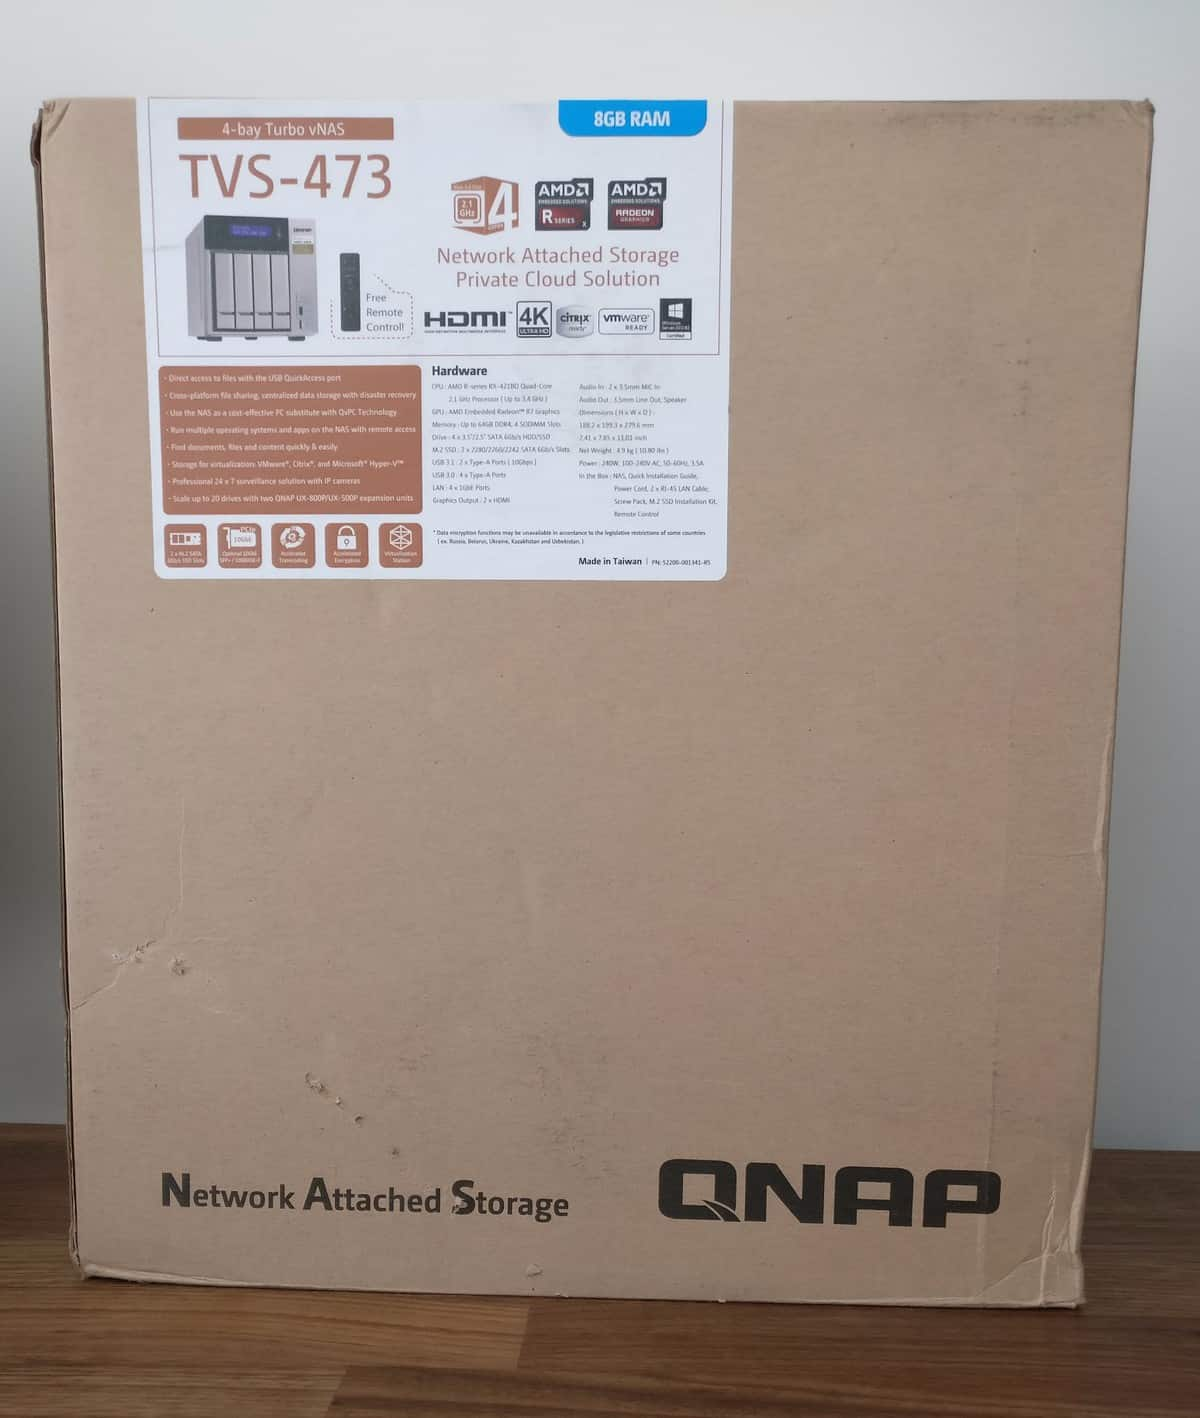 QNAP TVS-473 4-Bay NAS Review - The Streaming Blog